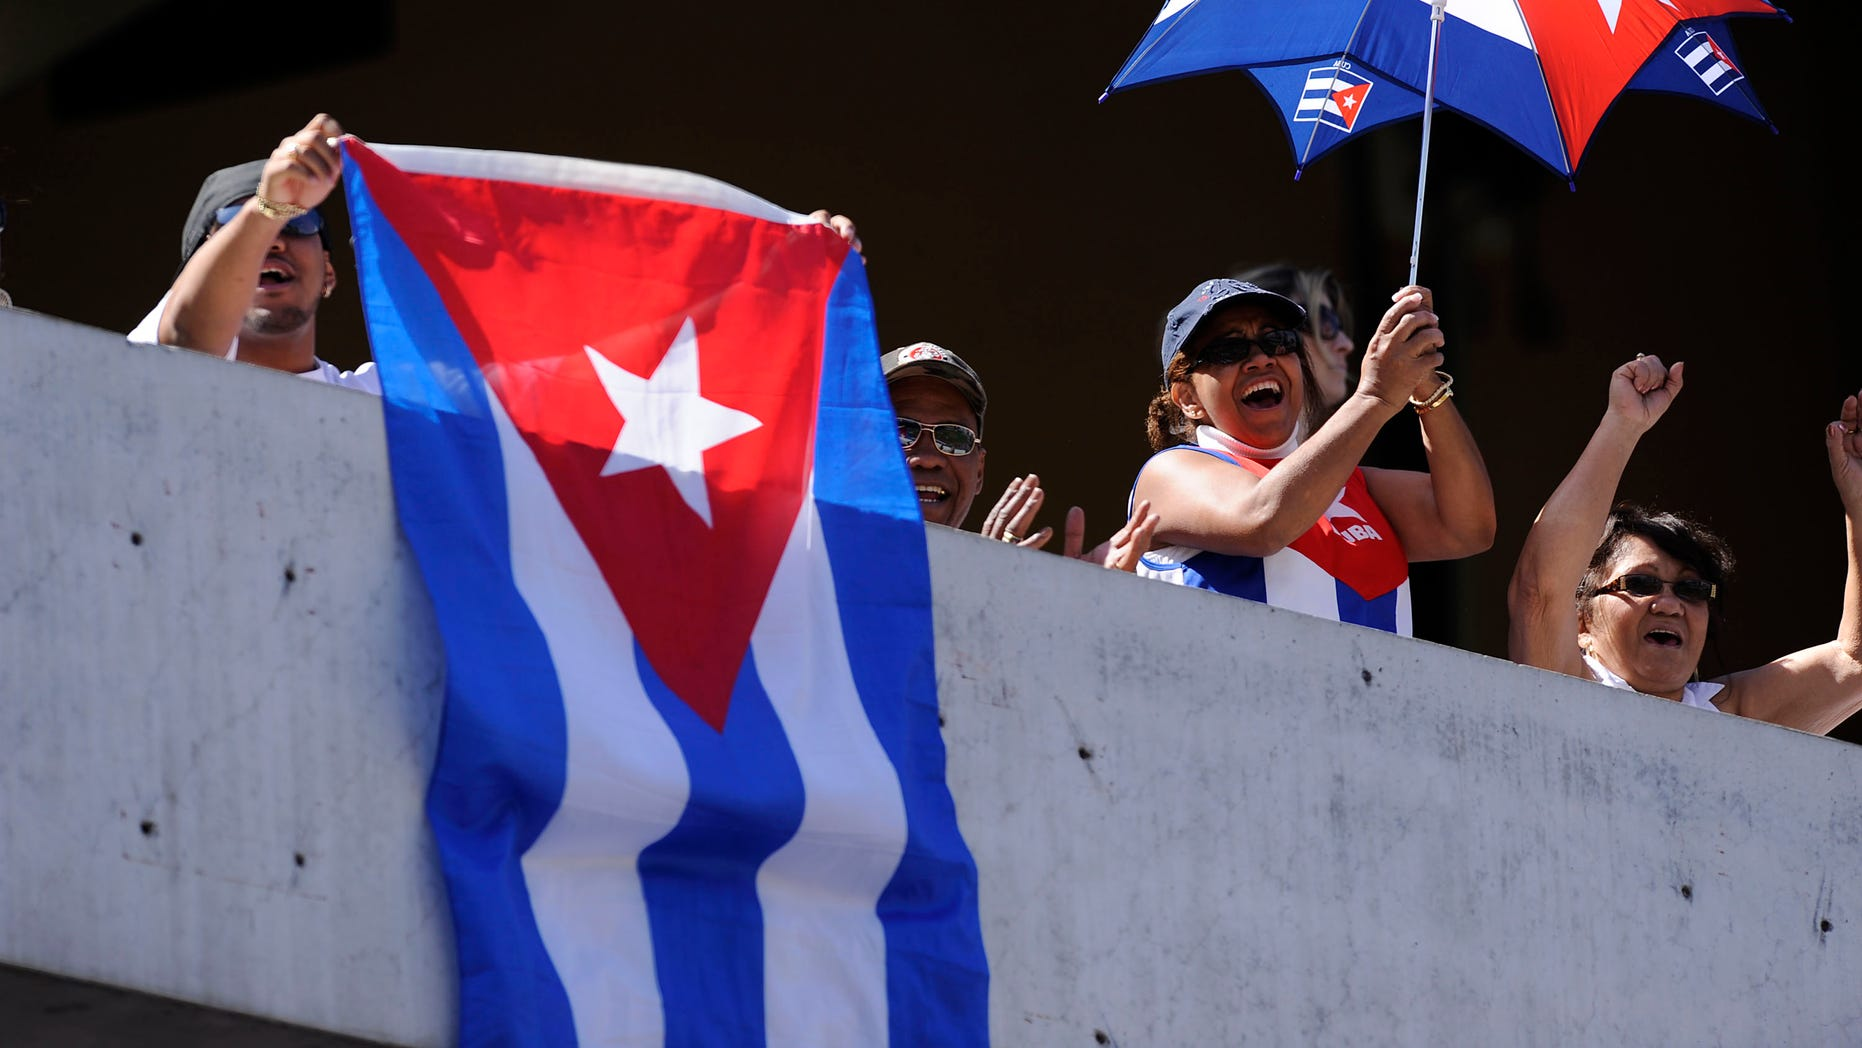 SAN DIEGO - MARCH 15: Fans od Cuba cheer for their team as they play against Japan during the 2009 World Baseball Classic Round 2 Pool 1 match on March 15, 2009 at Petco Park in San Diego, California.  (Photo by Kevork Djansezian/Getty Images)